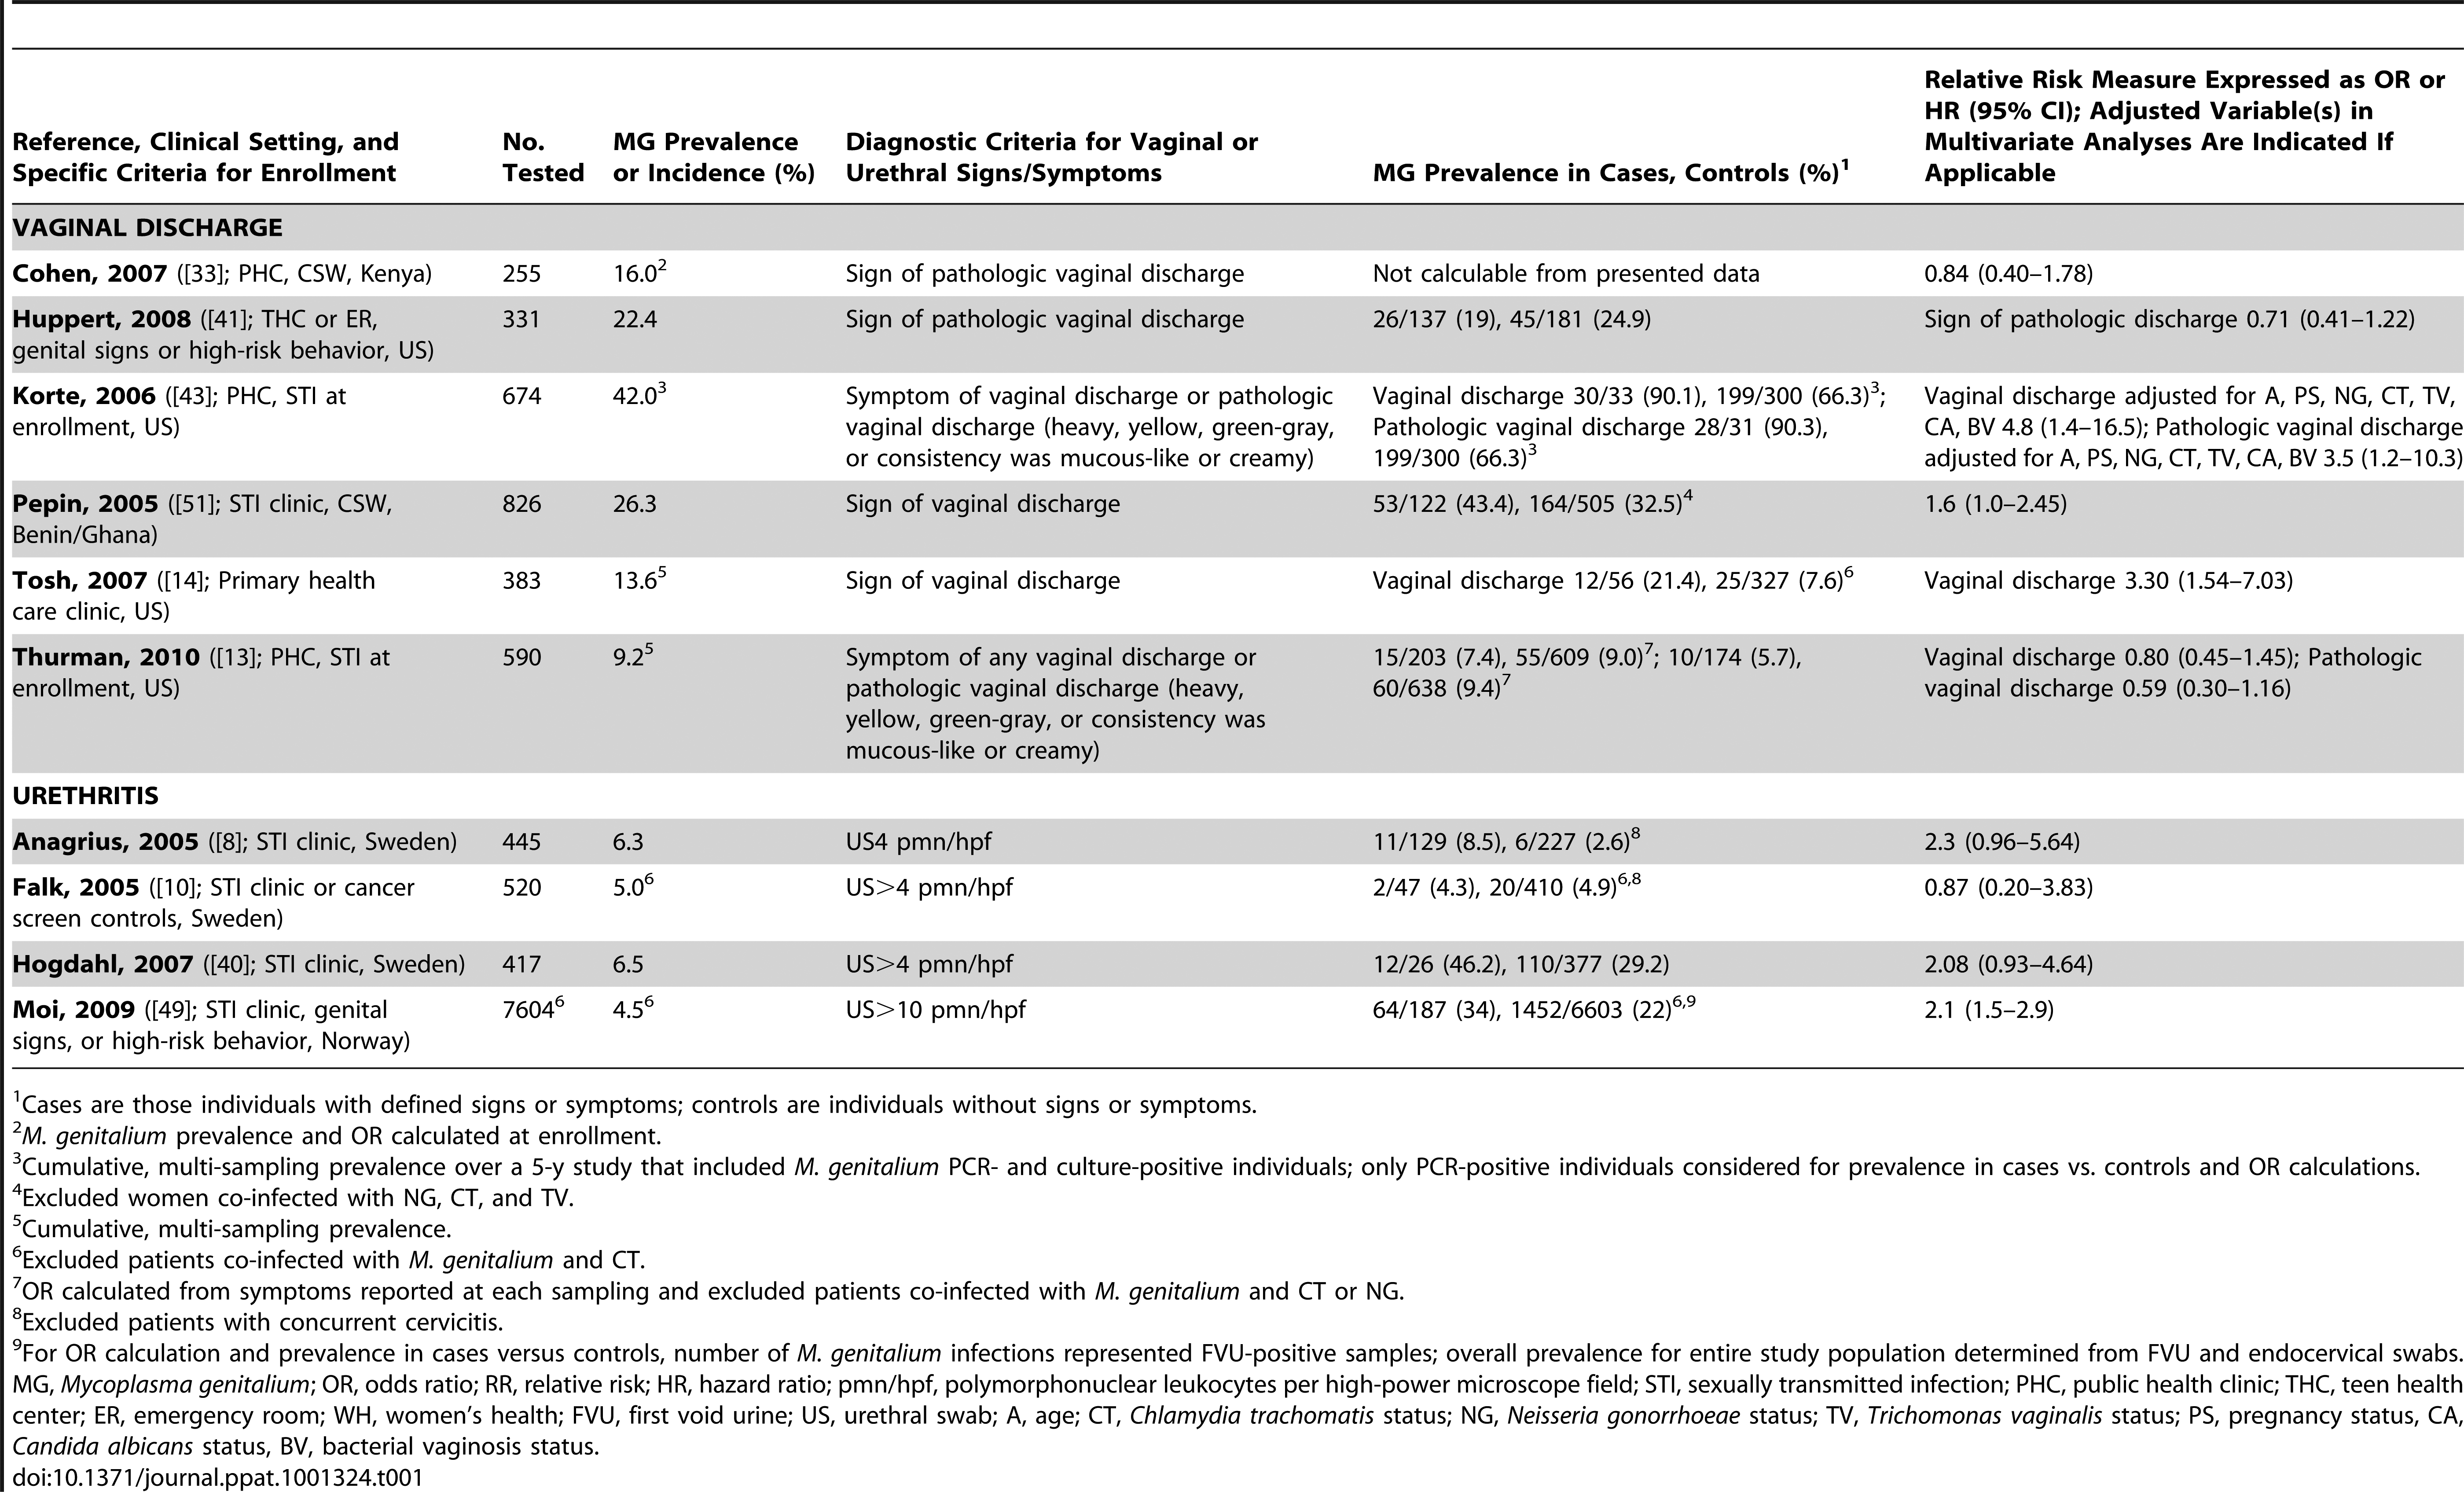 Characteristics of published studies evaluating the associations of <i>M. genitalium</i> with vaginal discharge or urethritis.